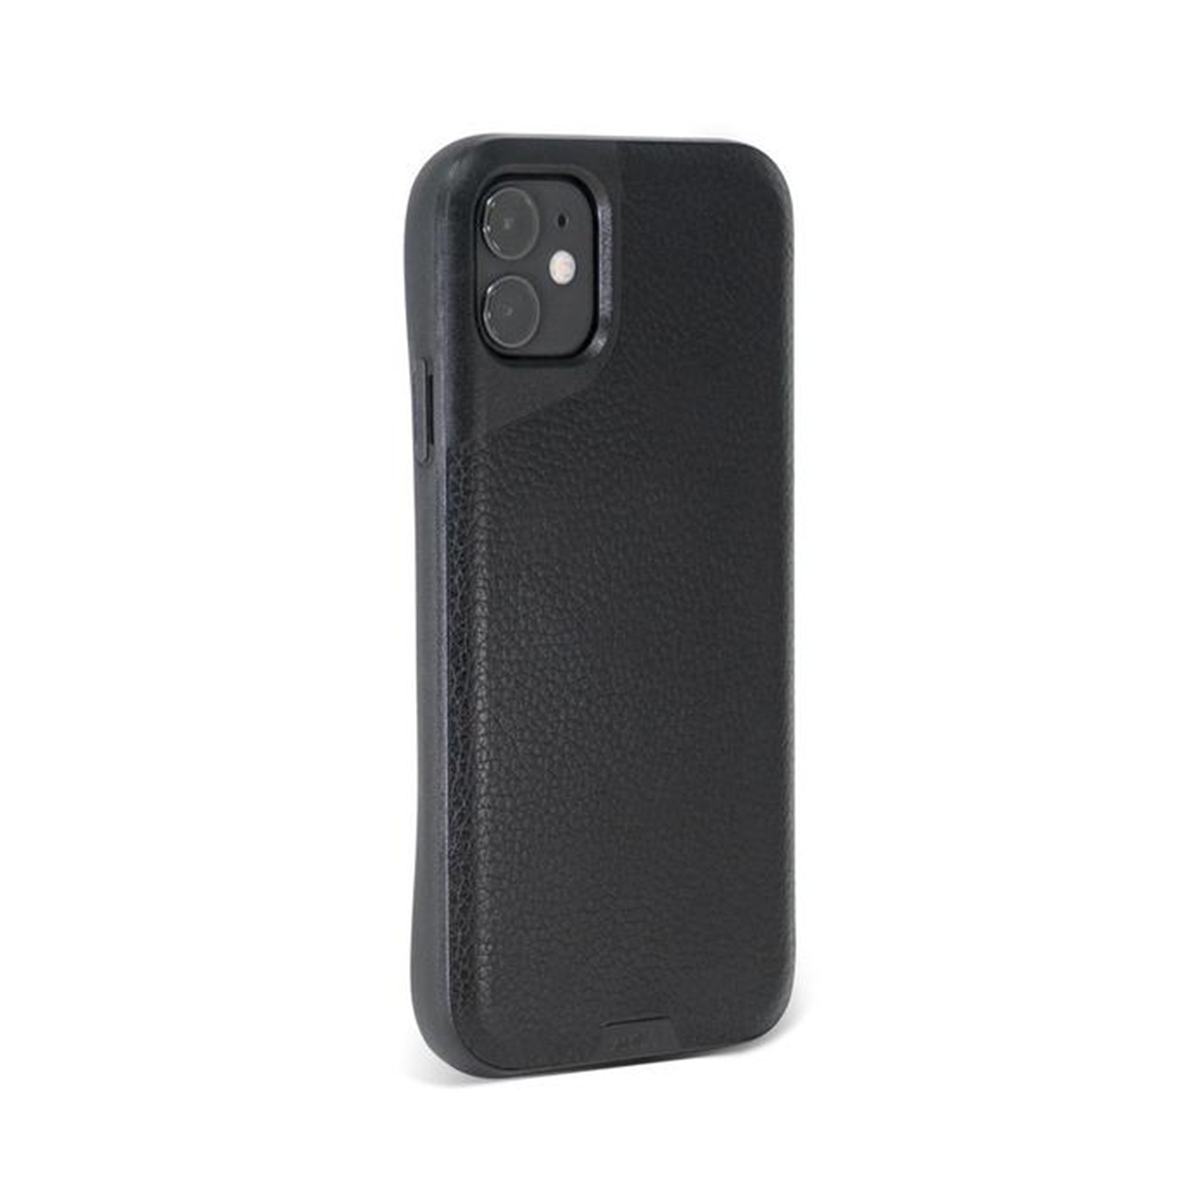 Mous - Contour Case for iPhone 11 - Black Leather